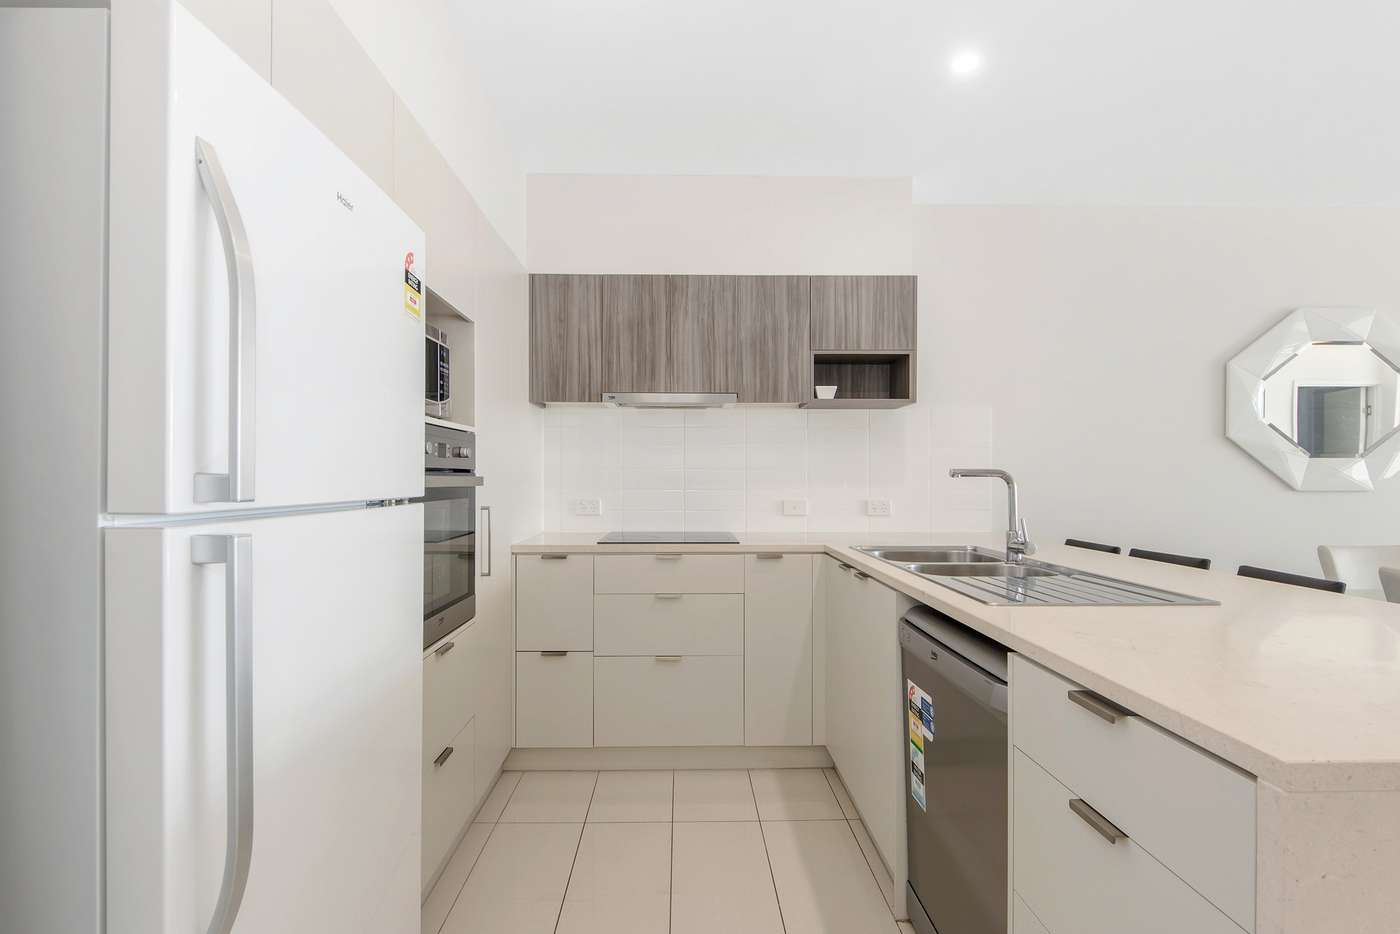 Seventh view of Homely unit listing, Address available on request